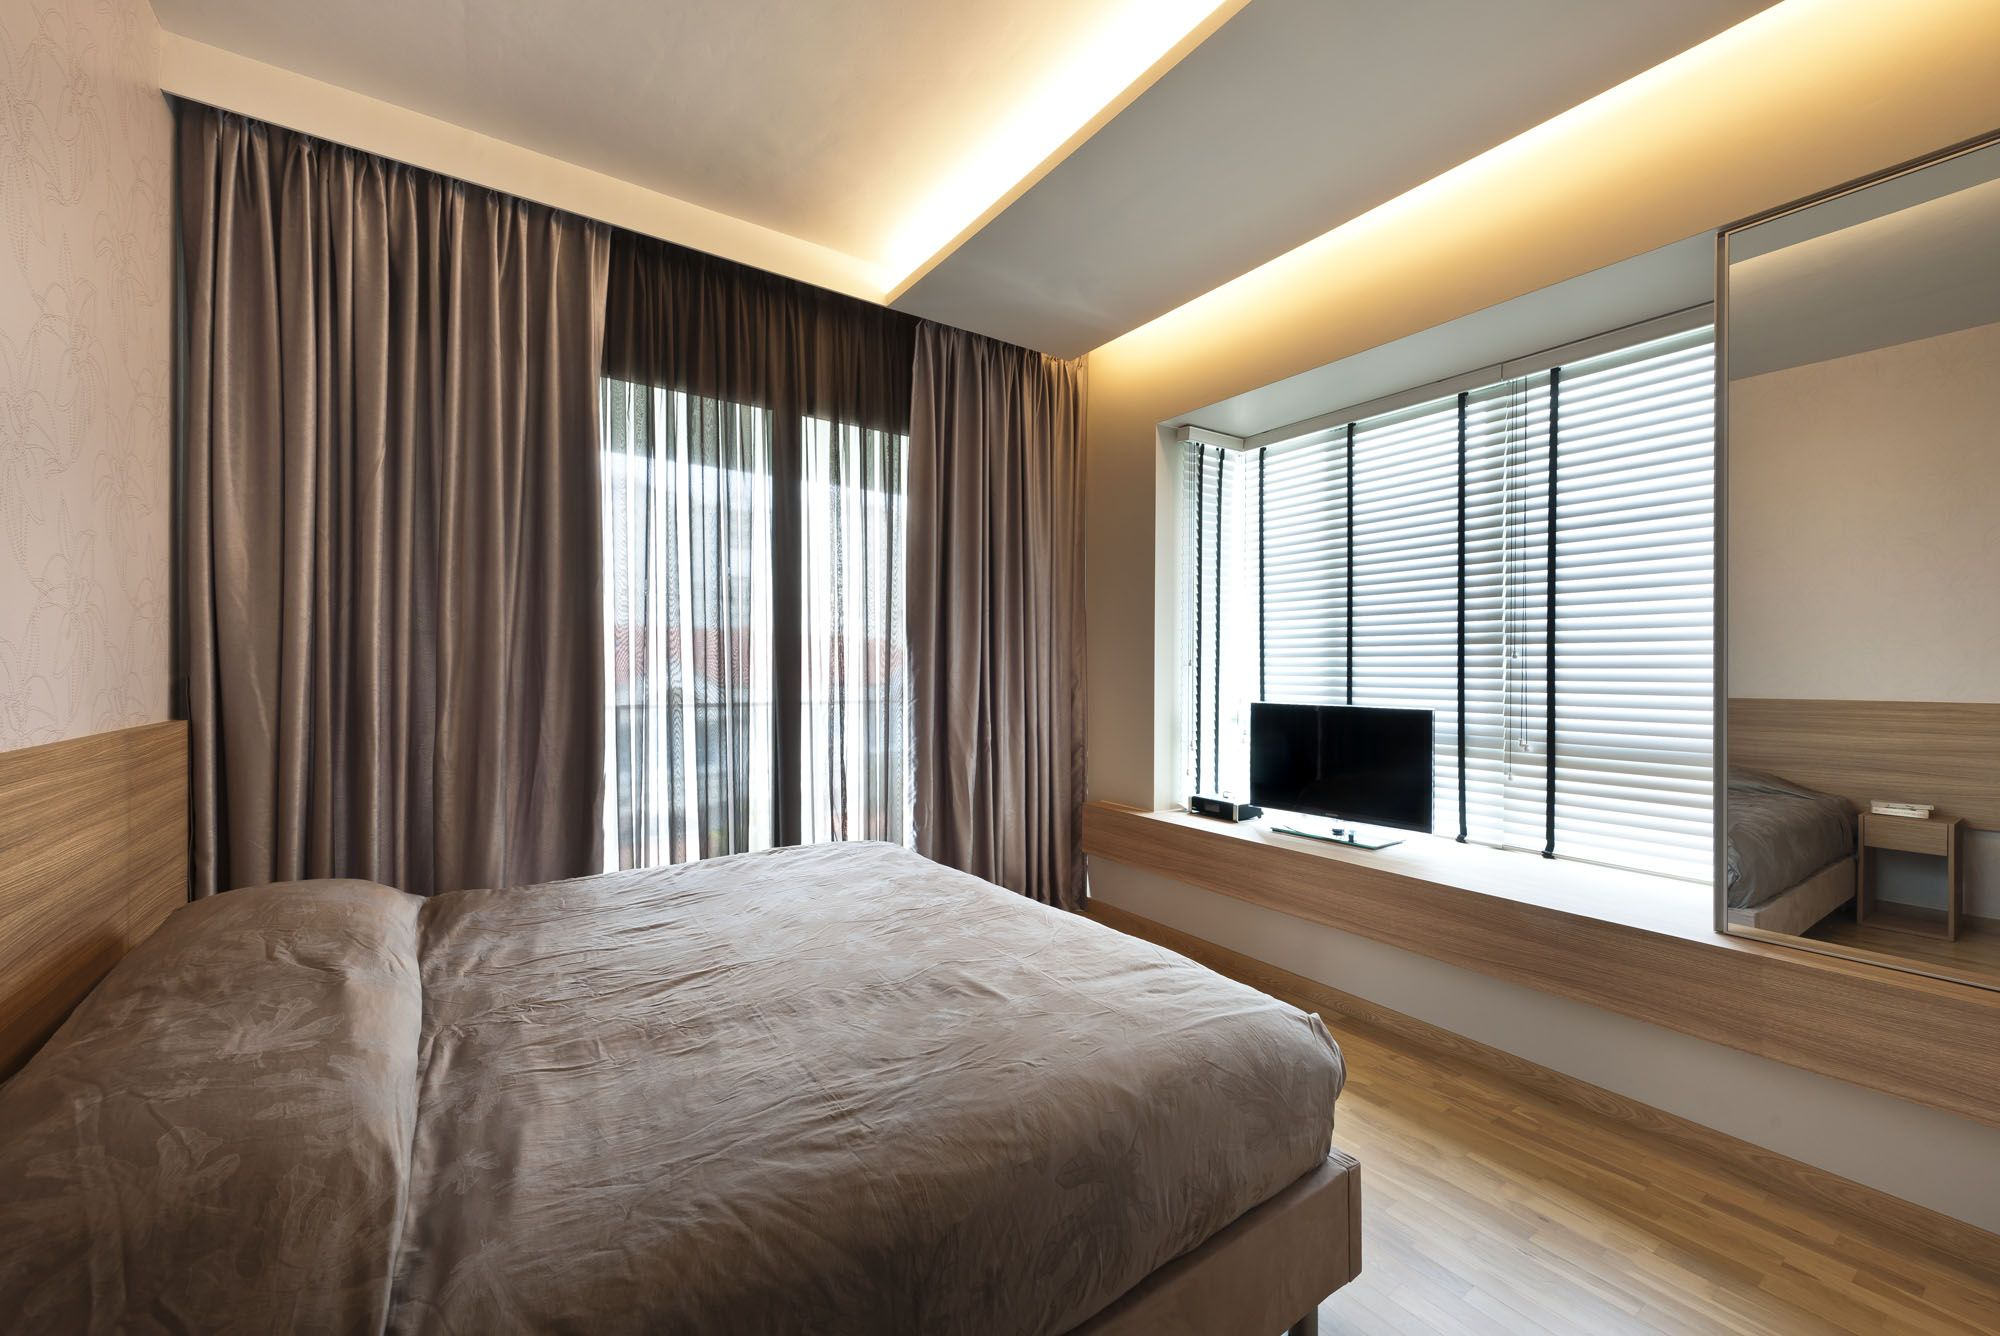 Bedroom Window Design Livia Condo Home And Decor Singapore Bay Windows Home